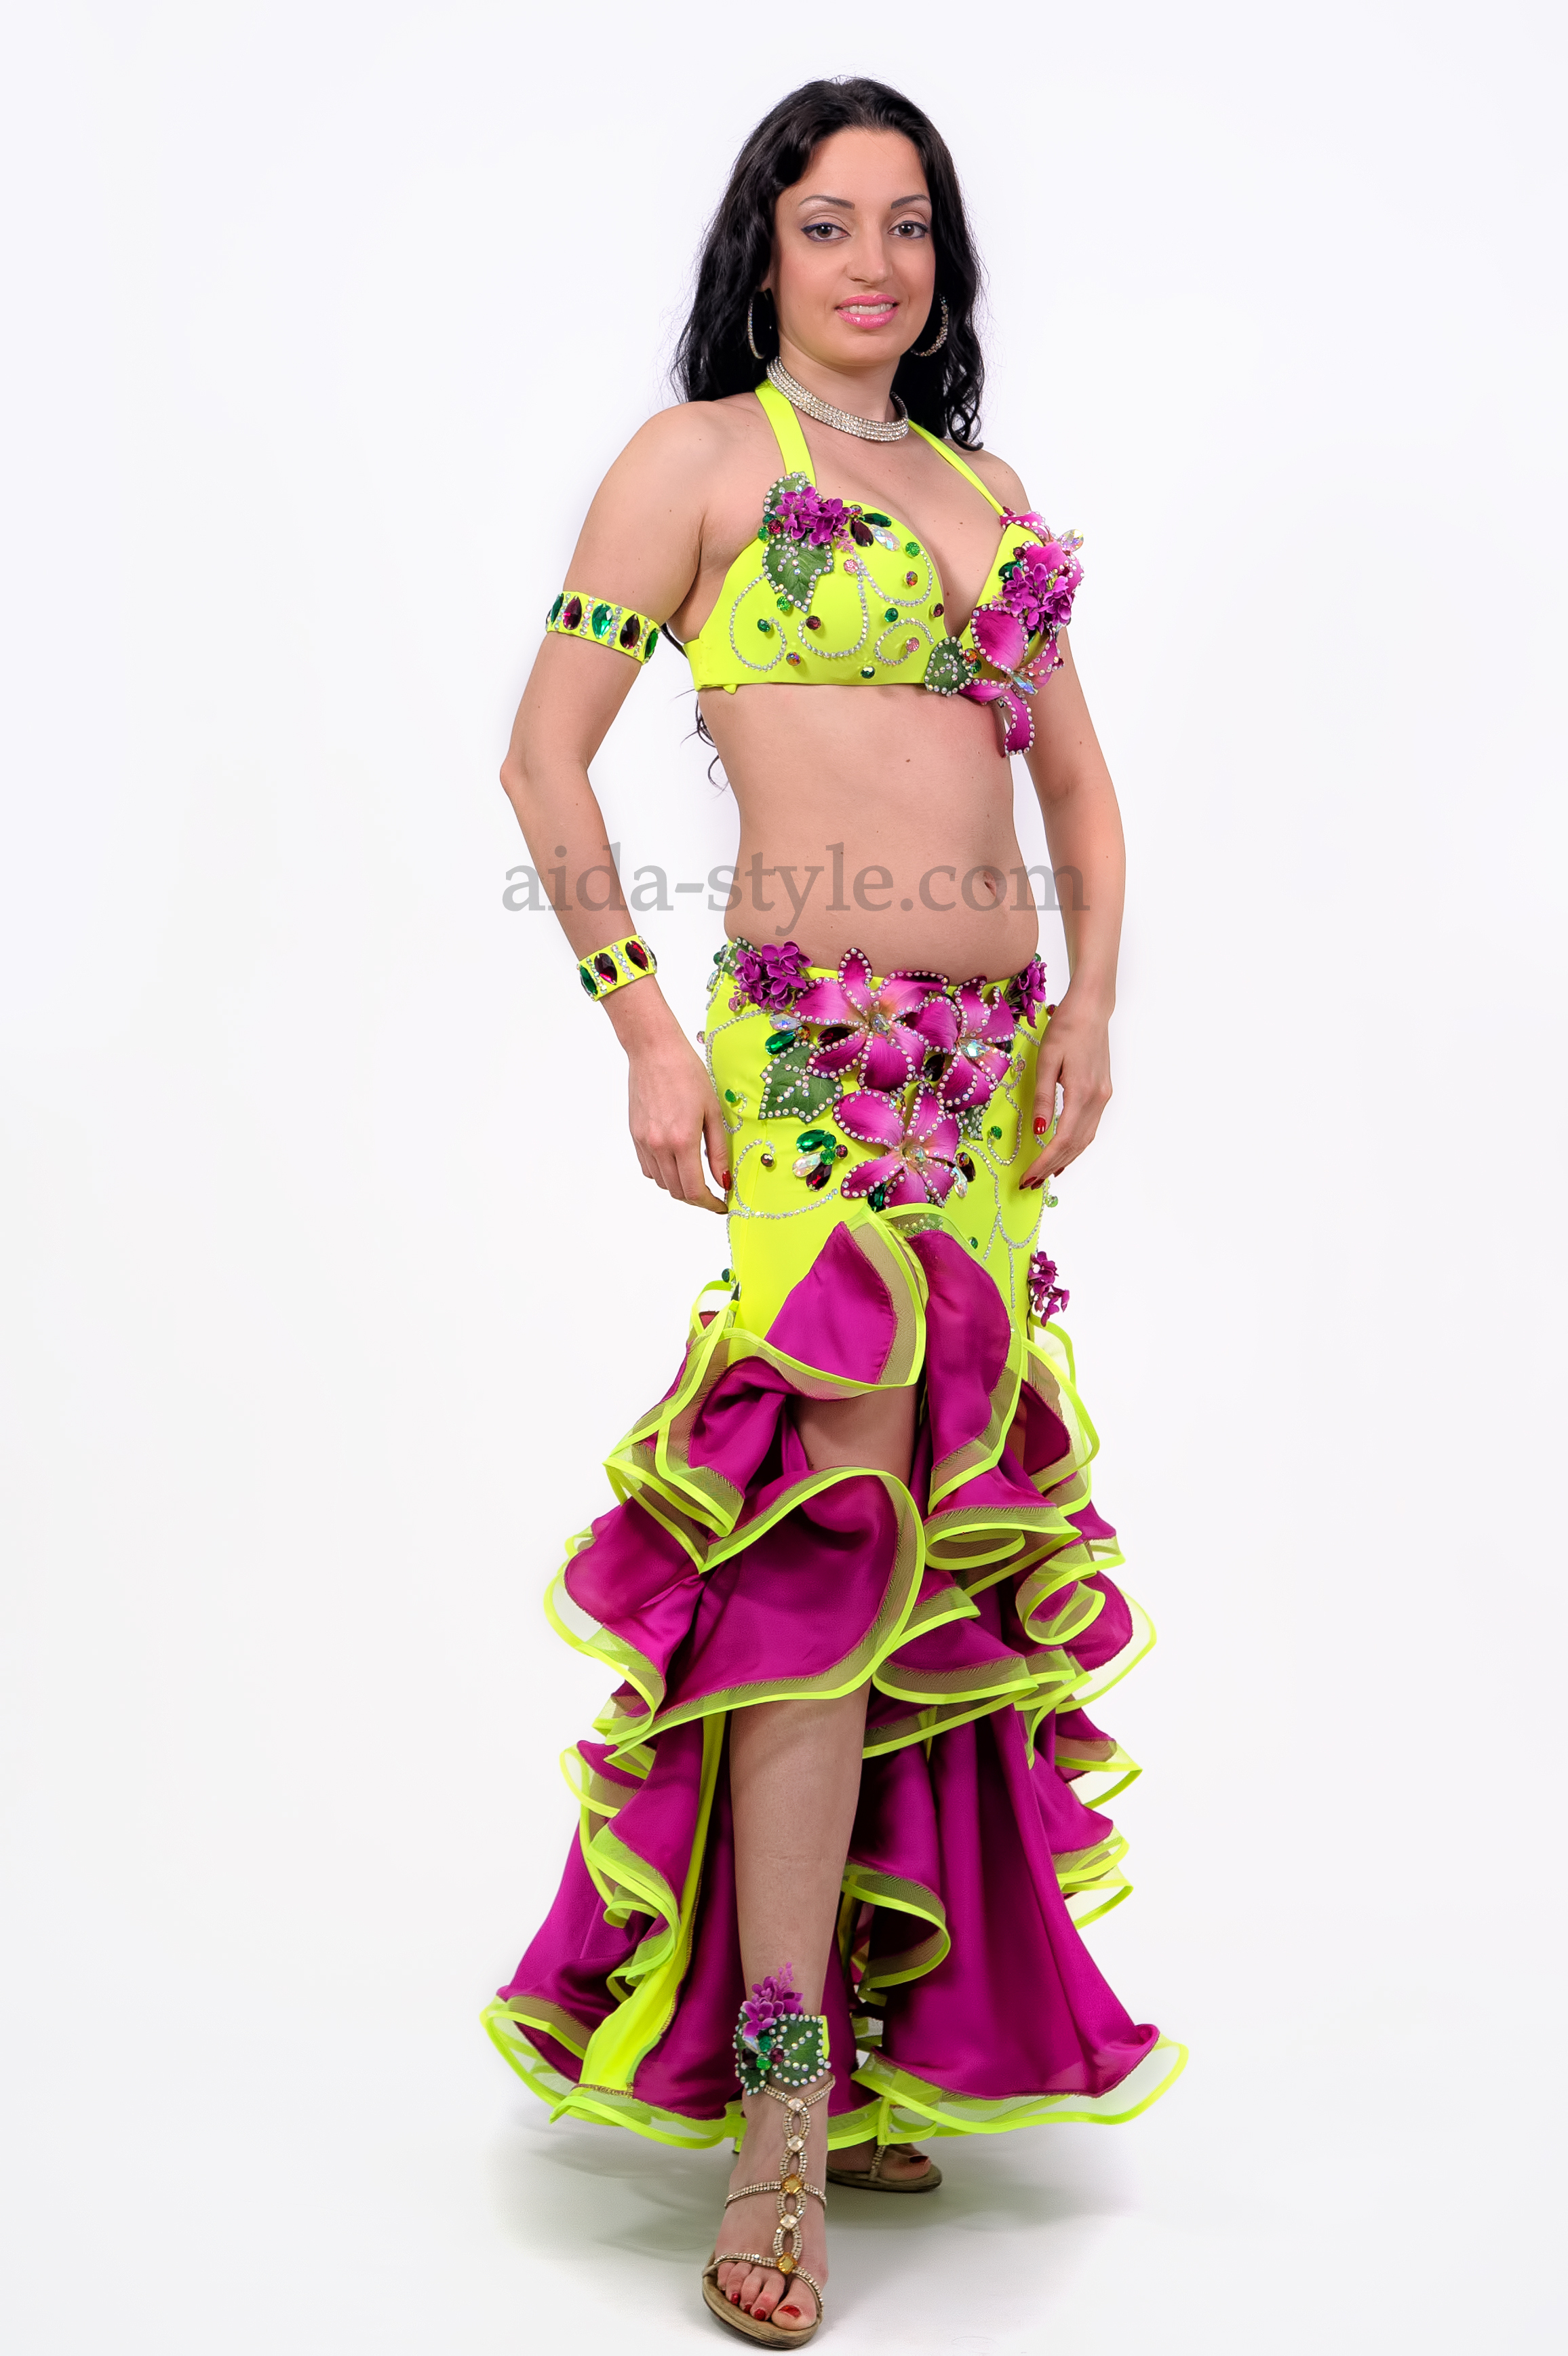 Professional belly dance dress. Violet color of artificial flowers match the color of flounces on the skirt. Th cut is on the right side